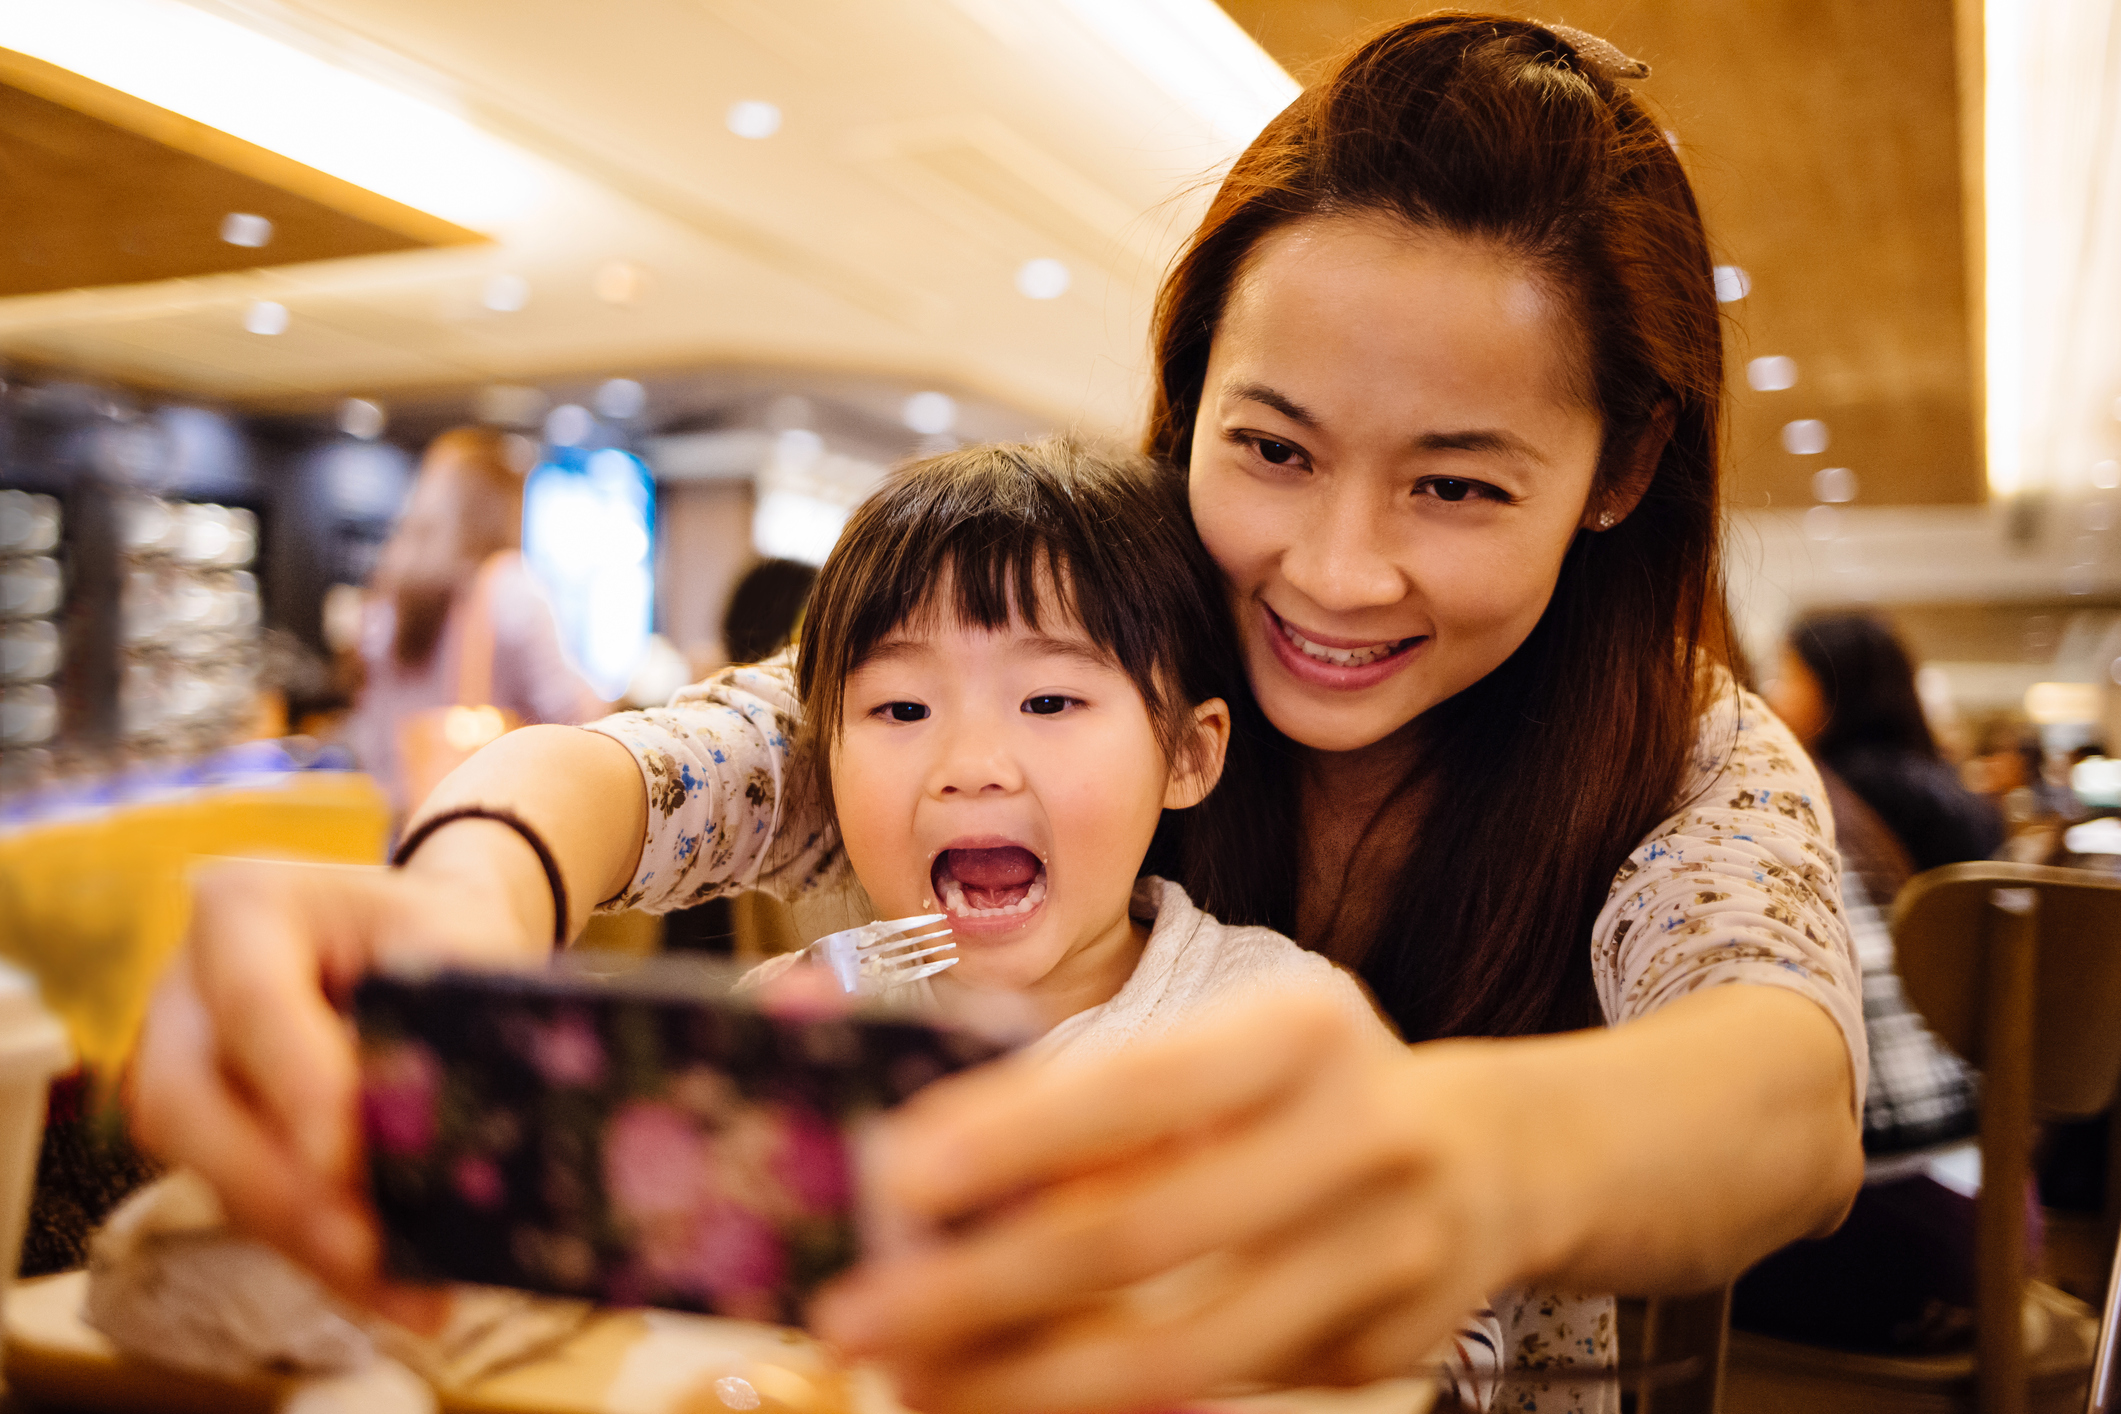 Lovely toddler girl sitting in mom's lap taking self portraits joyfully with mom using the smartphone in the cafe